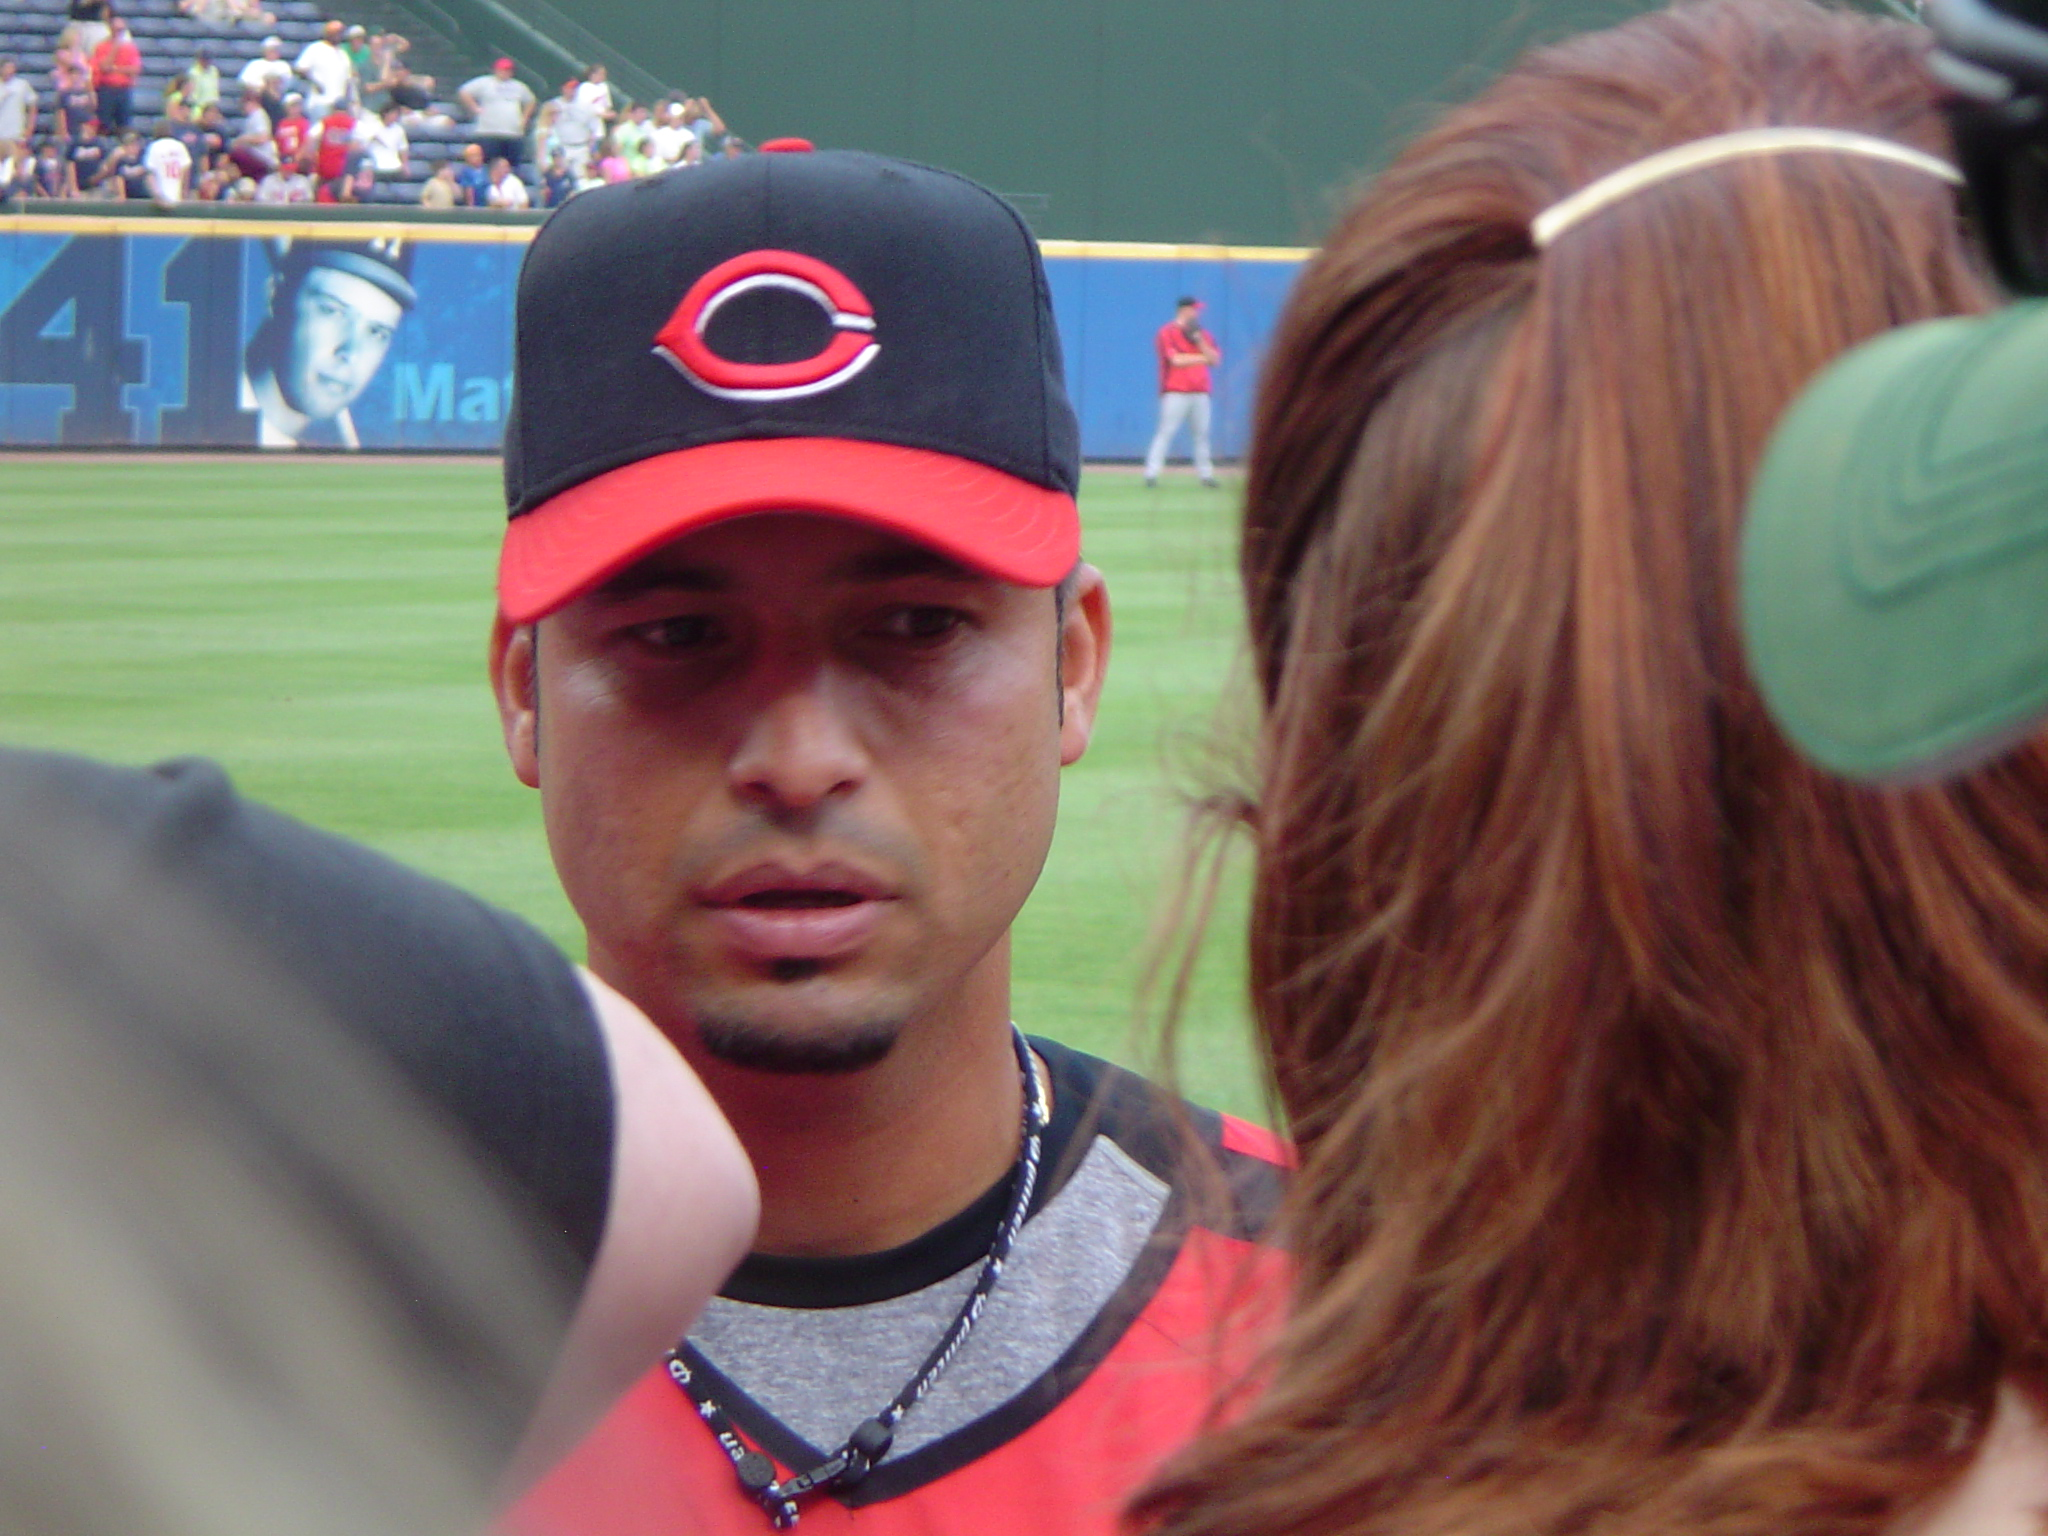 Castro speaking with the media